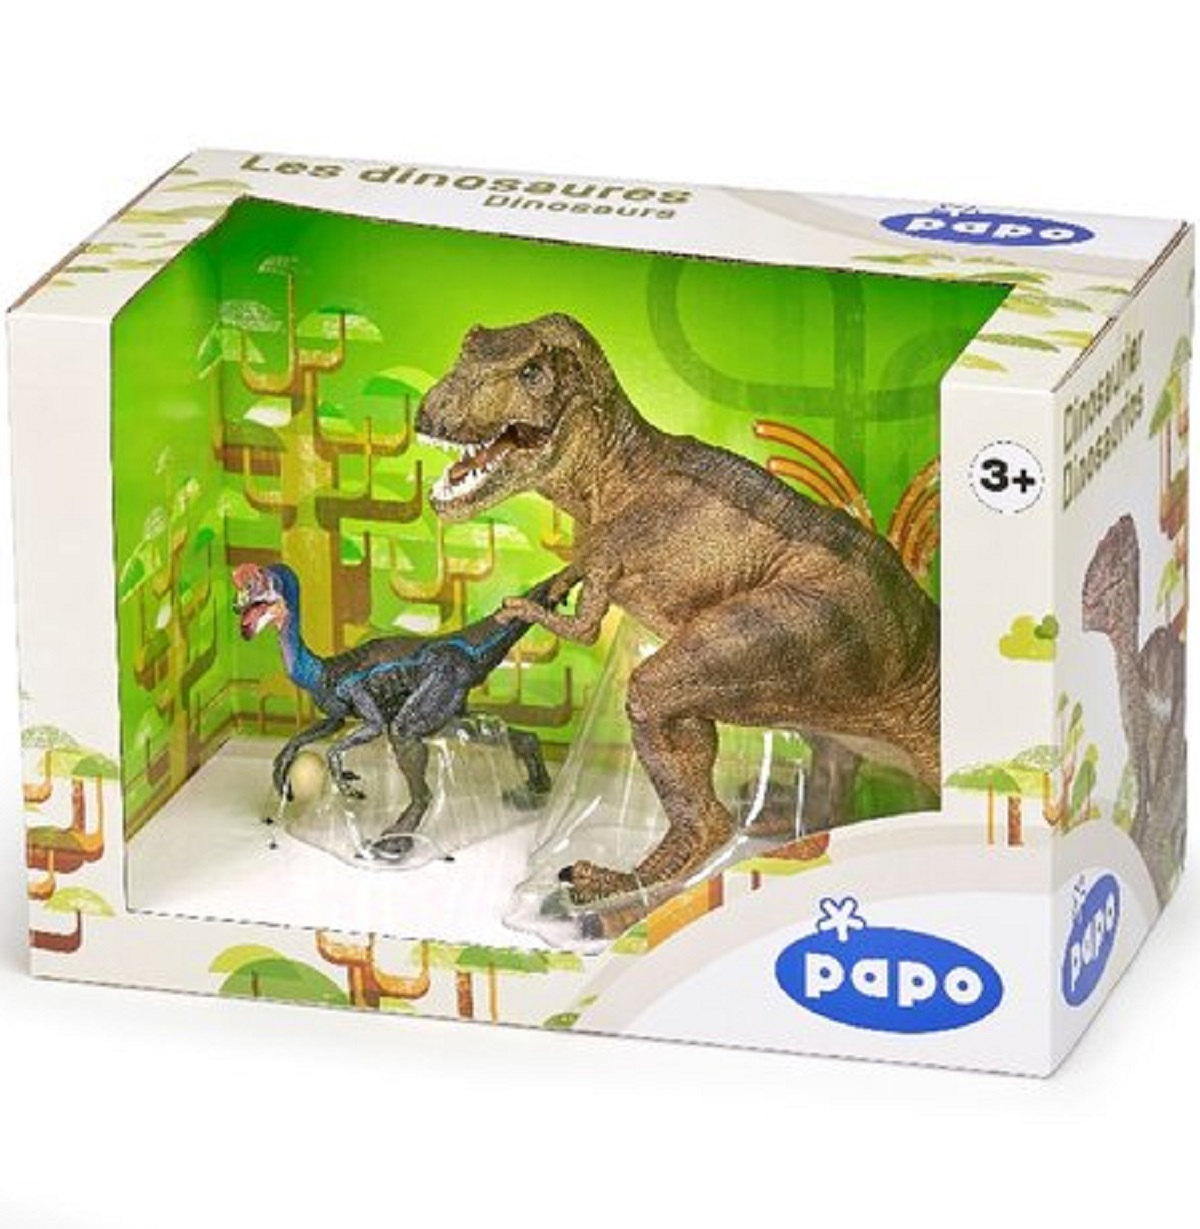 Dinosaur T-Rex and Oviraptor Gift Set